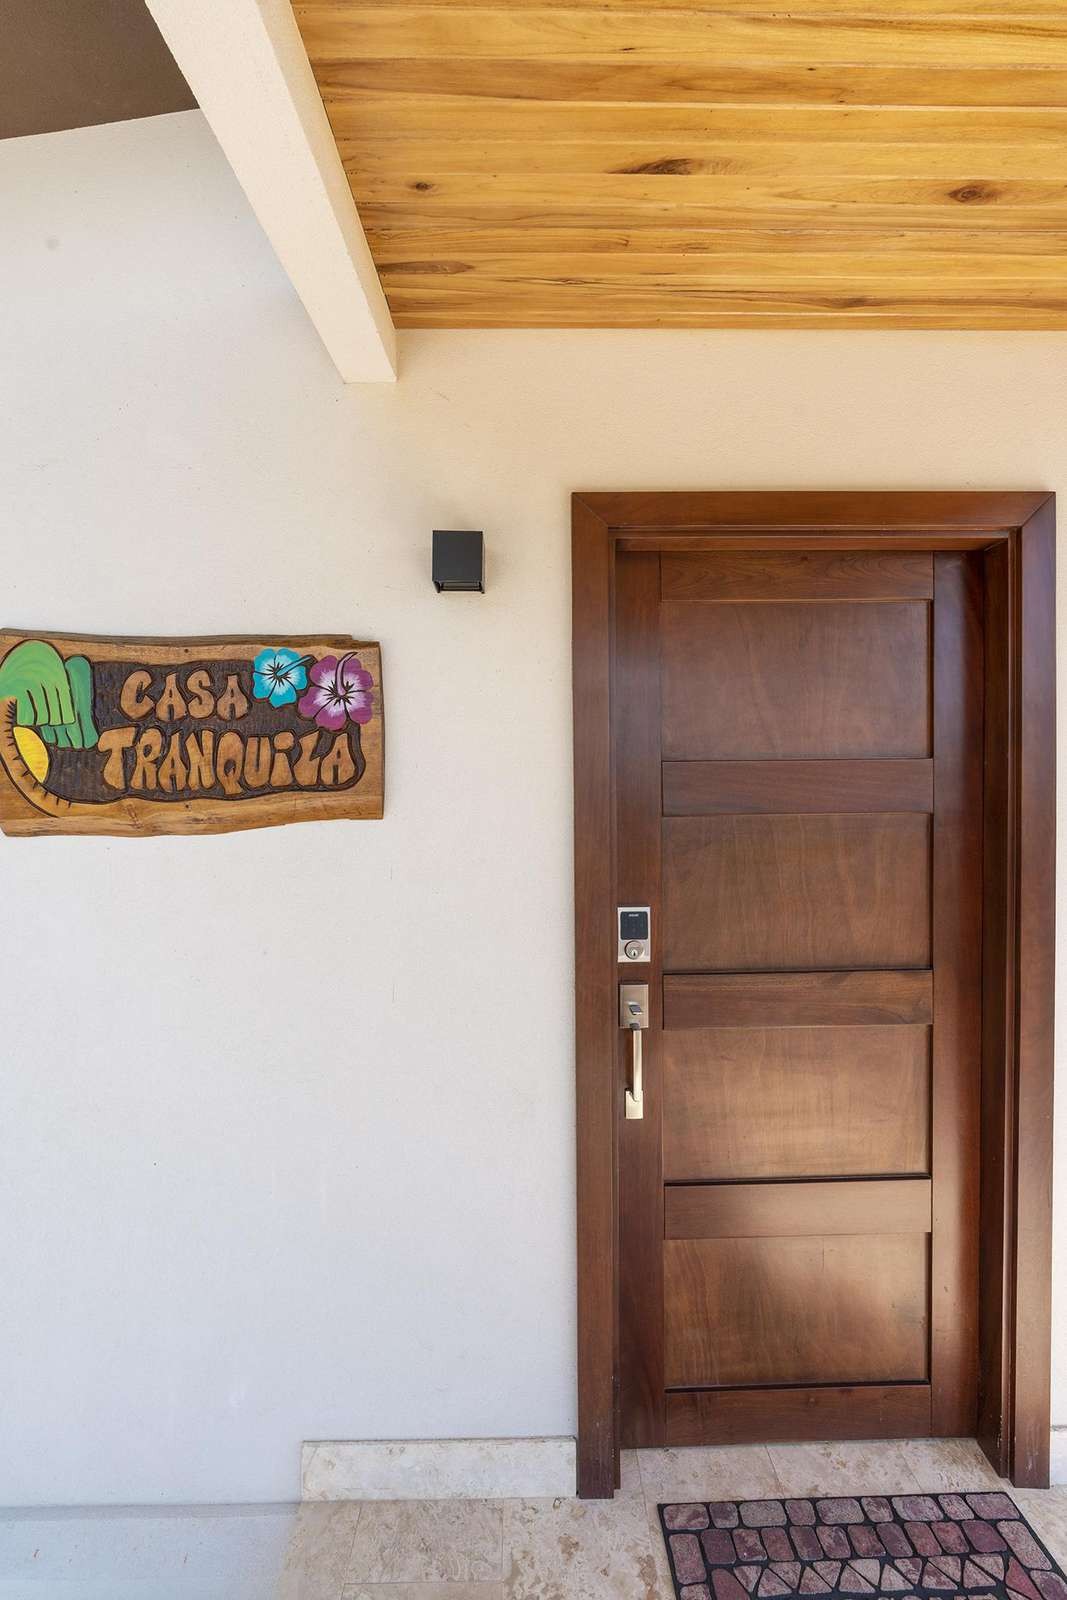 Main entrance at Casa Tranquila